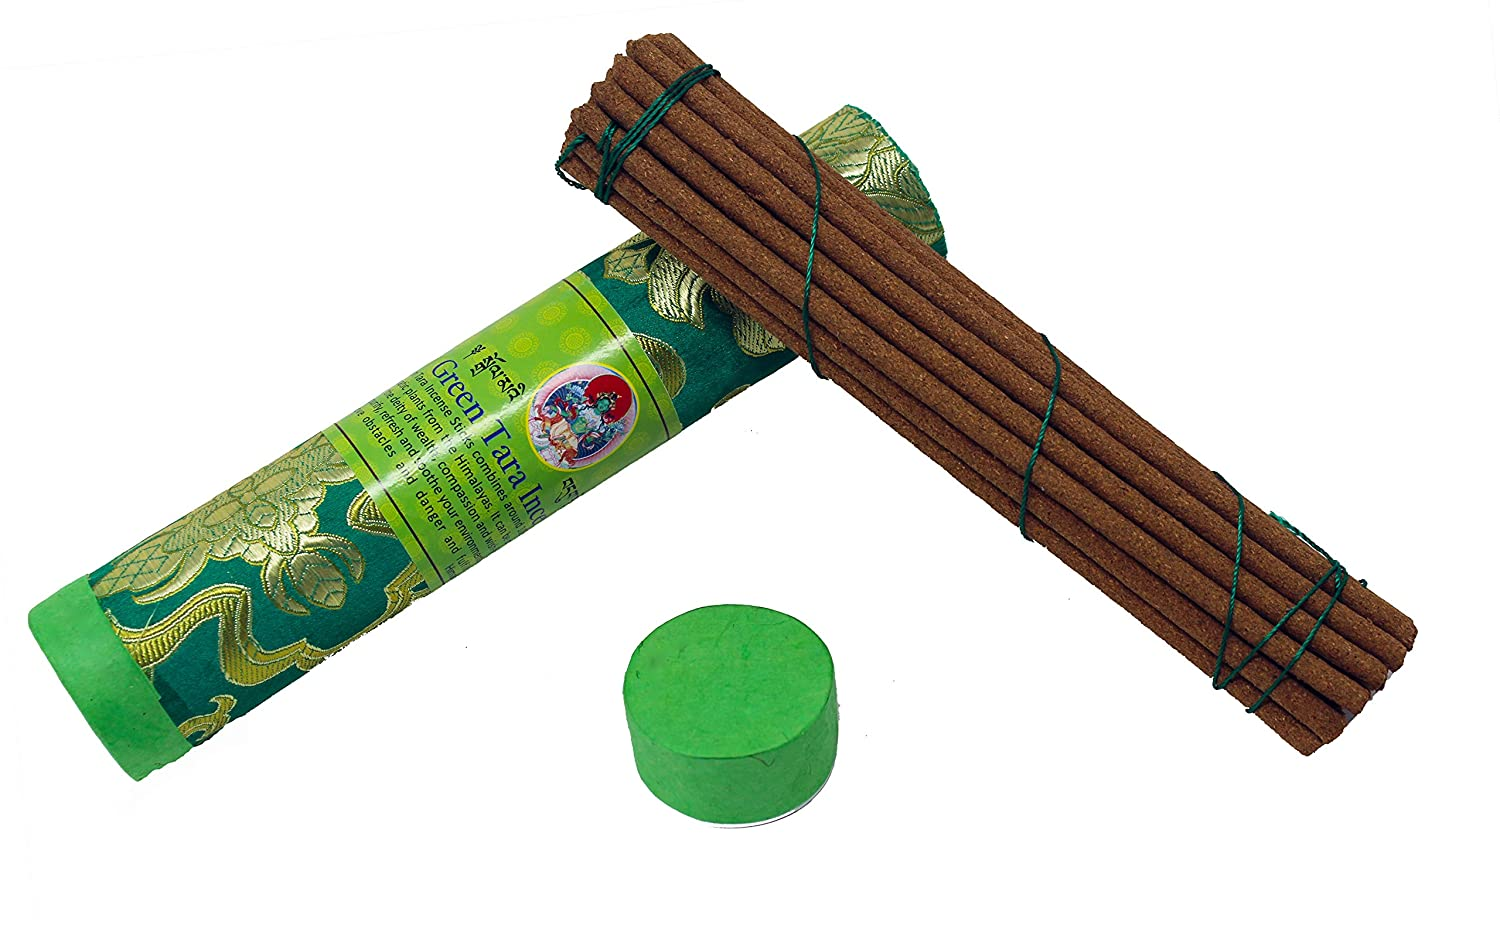 Juccini Tibetan Incense Sticks ~ Hand Rolled Green Tara Incense Made from Organic Himalayan Herbs for Prosperity and Good Luck (Green Tara)